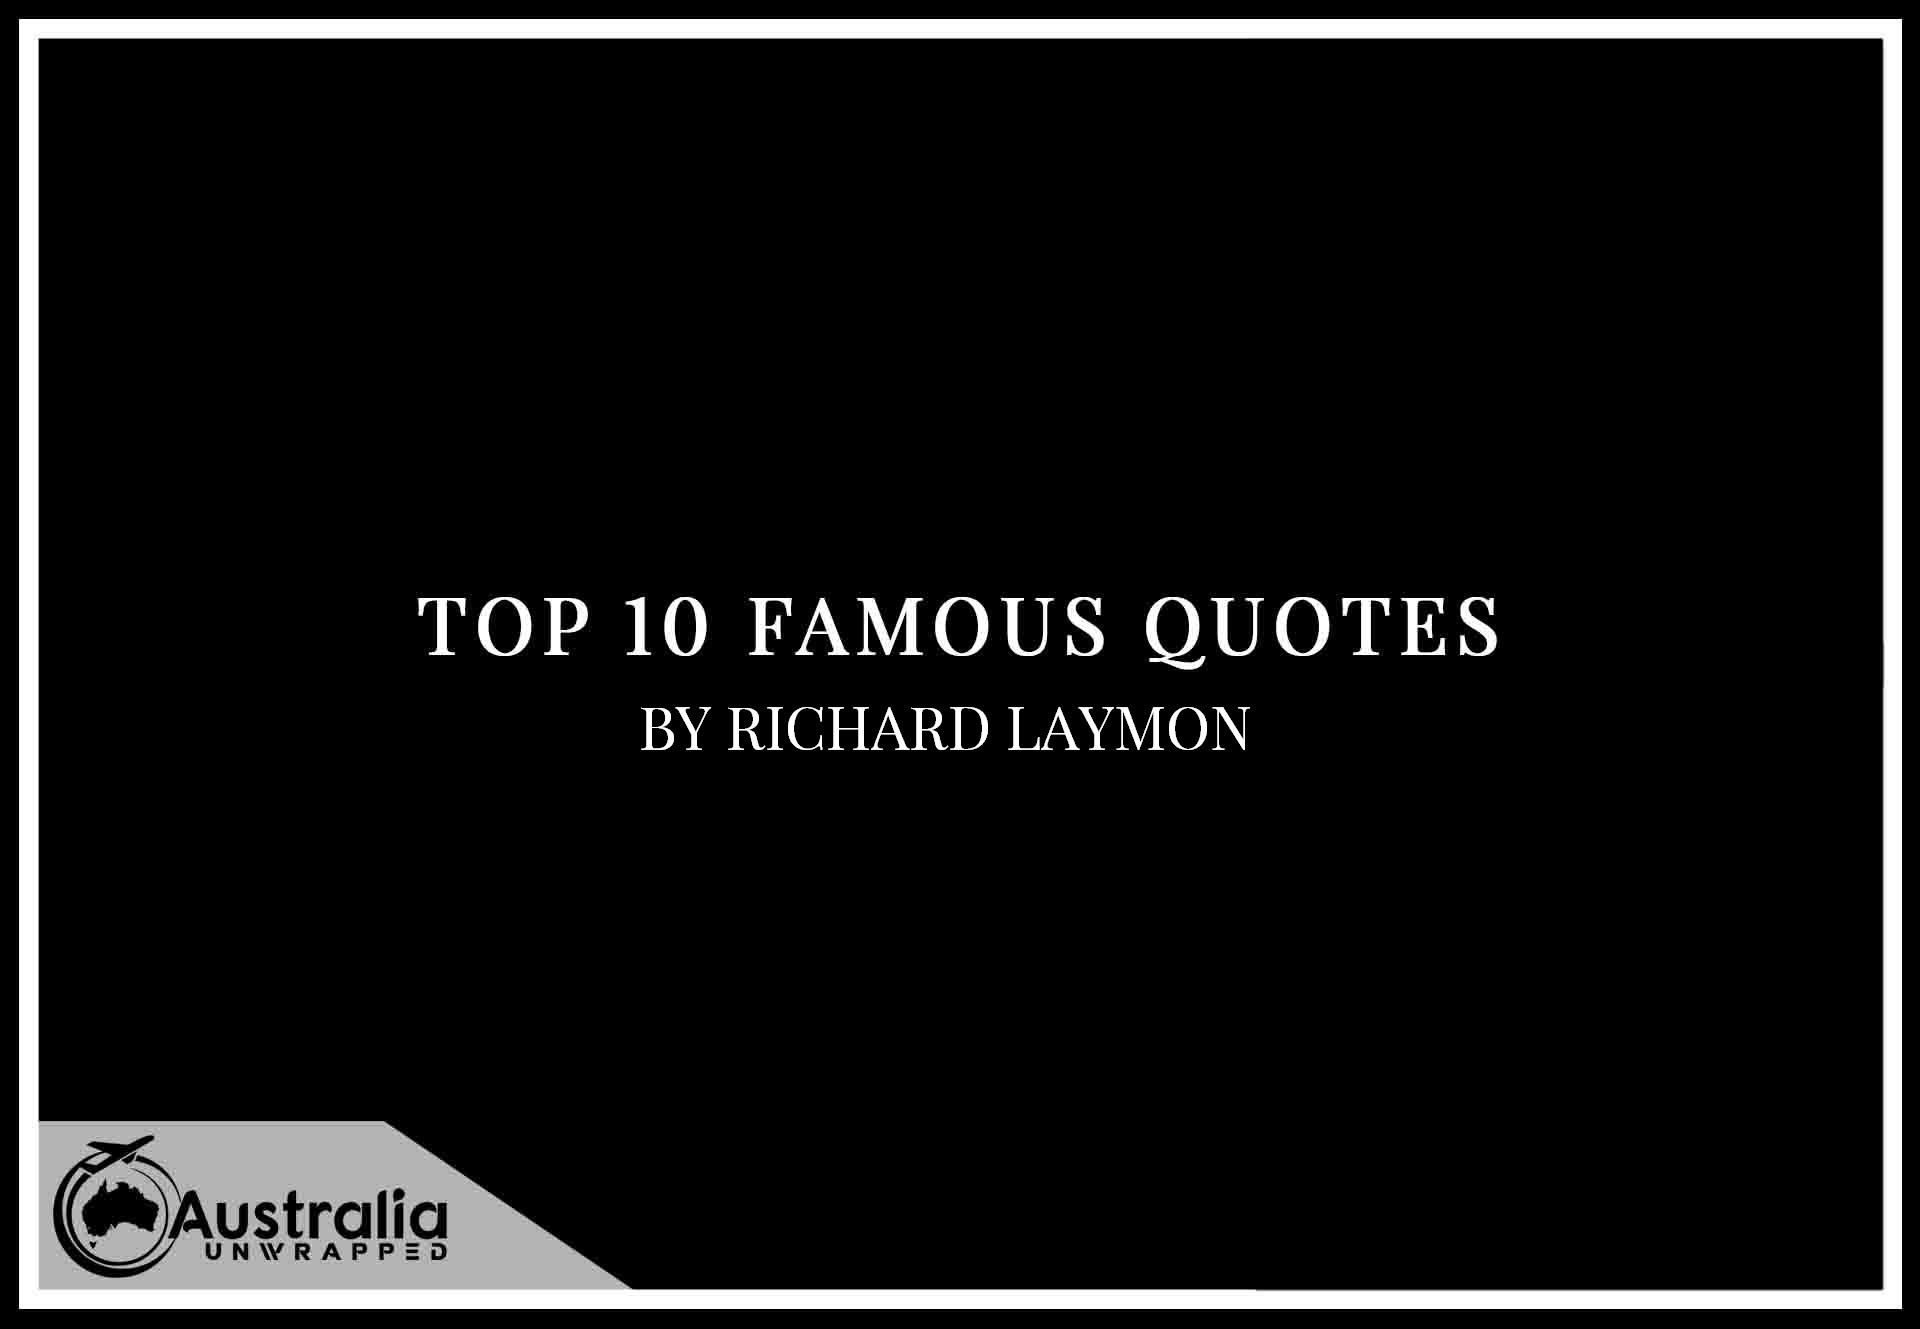 Top 10 Famous Quotes by Author Richard Laymon